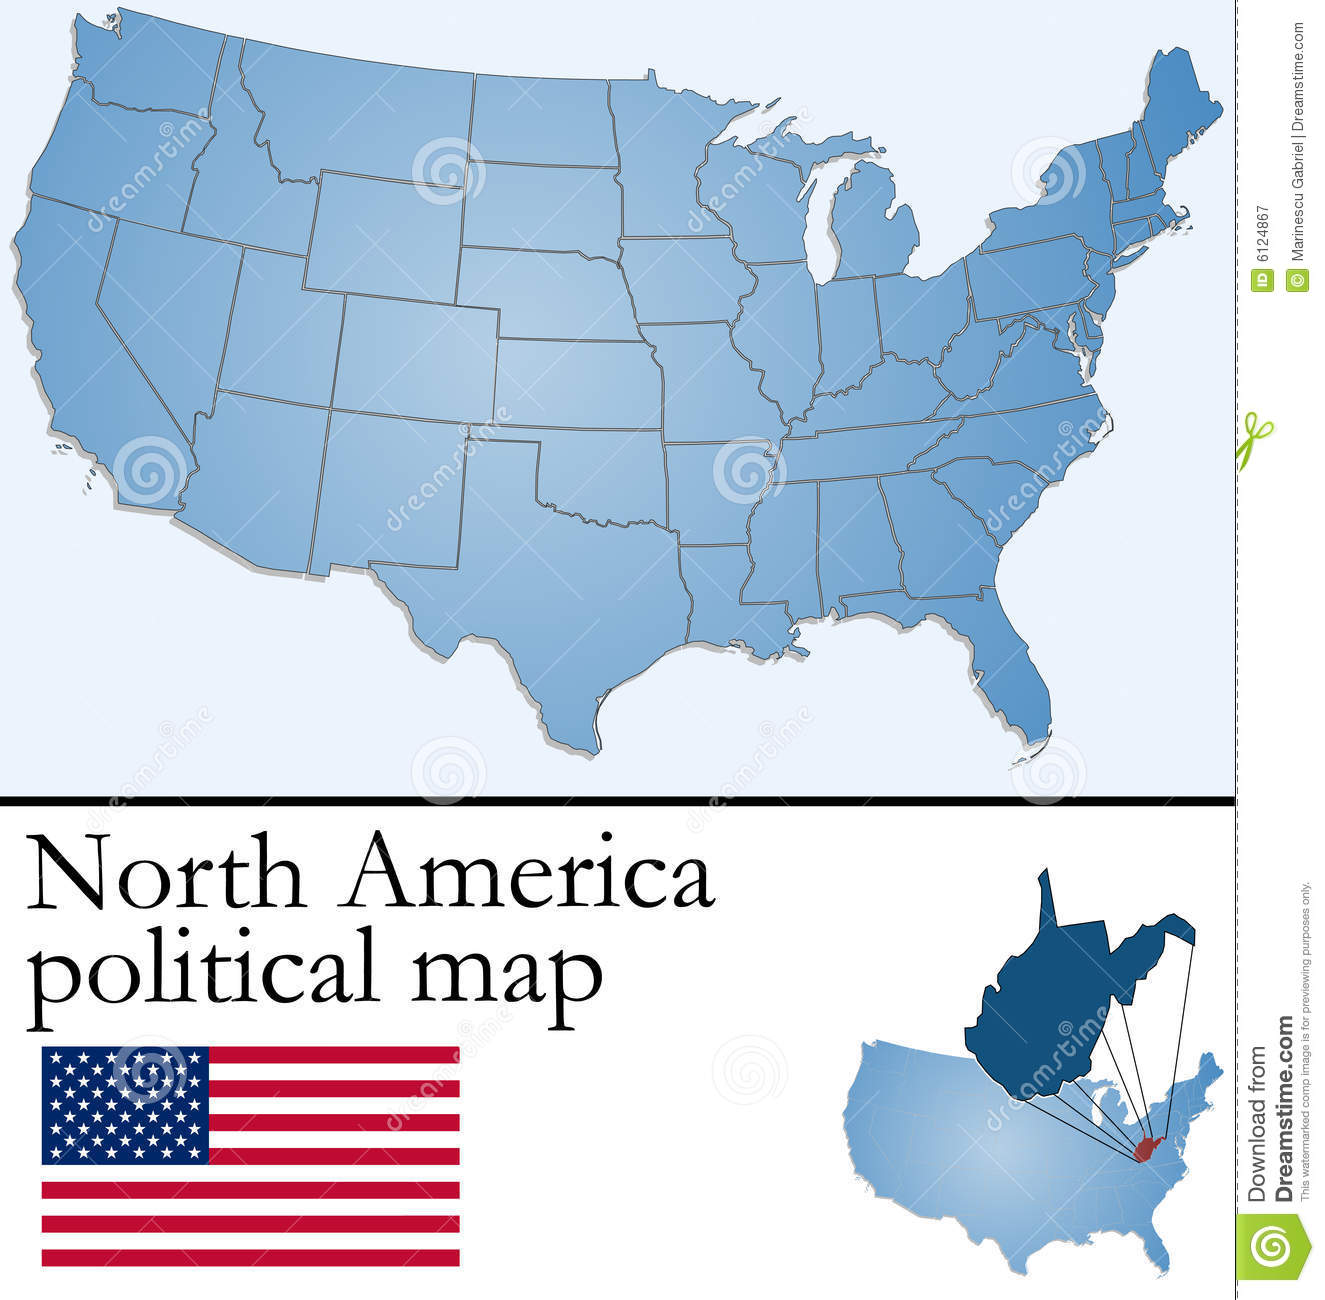 North America Political Map Illustration 6124867 - Megapixl